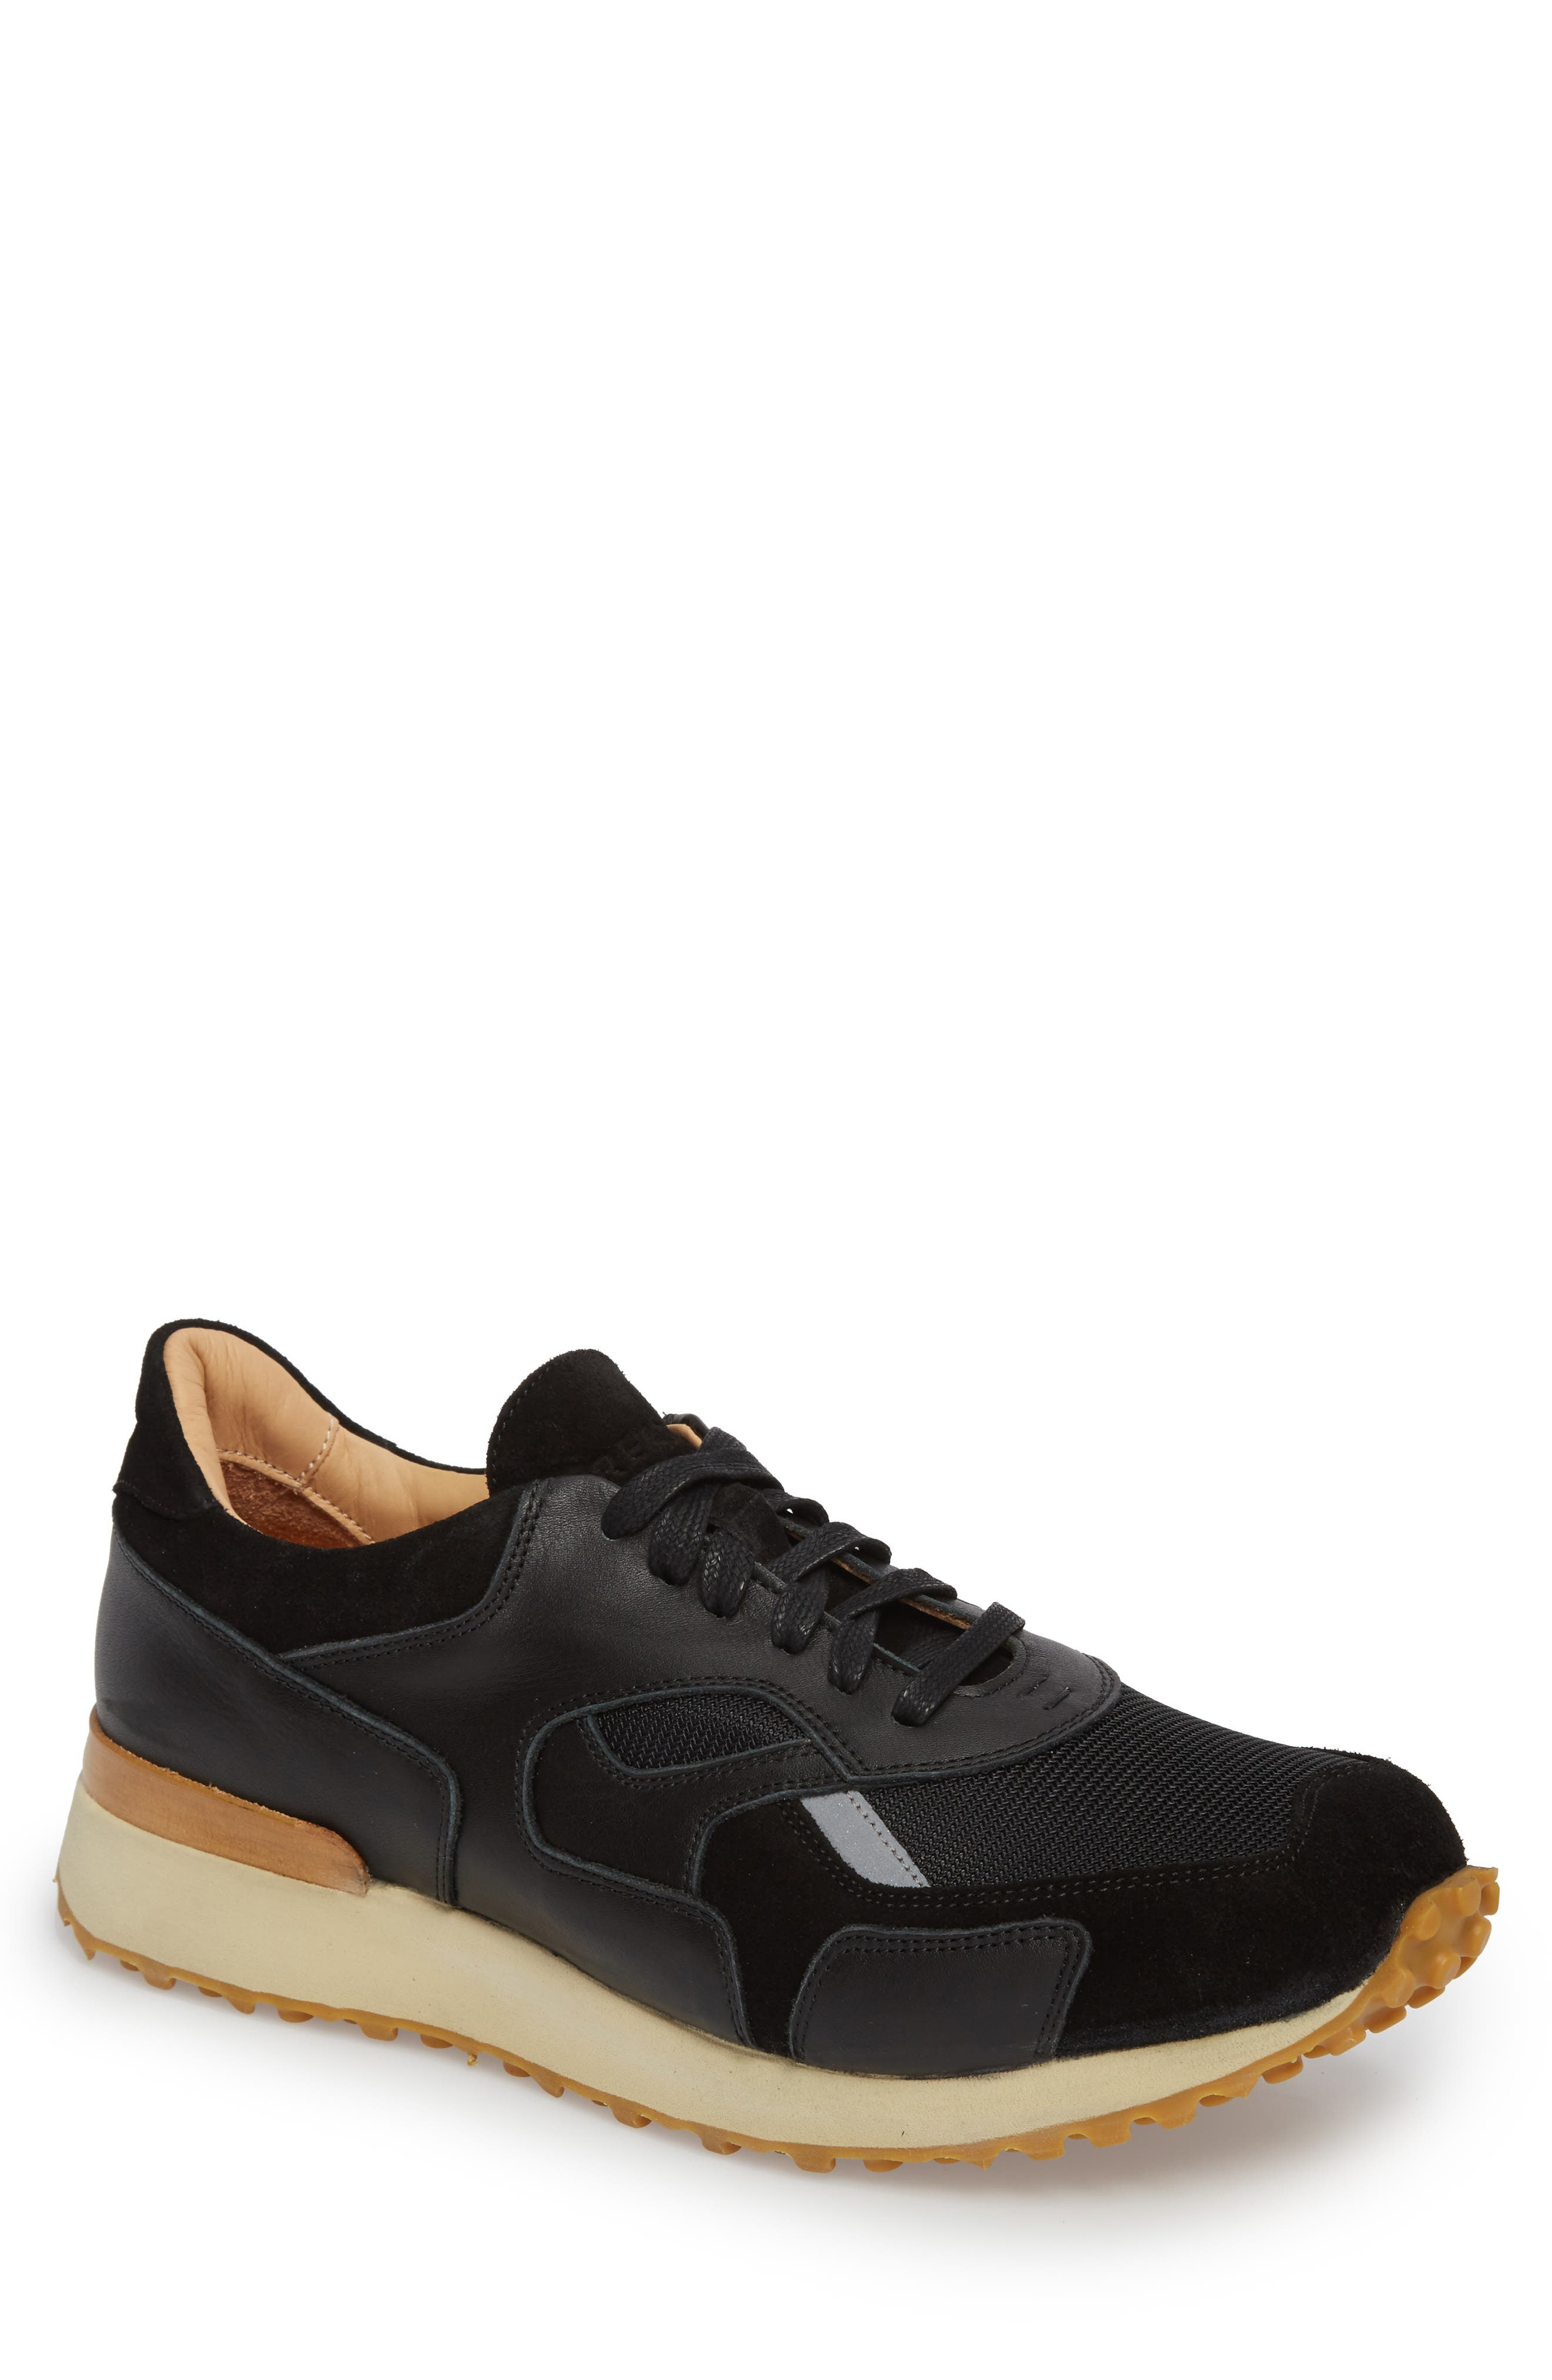 Alternate Image 1 Selected - Greats The Pronto Sneaker (Men)